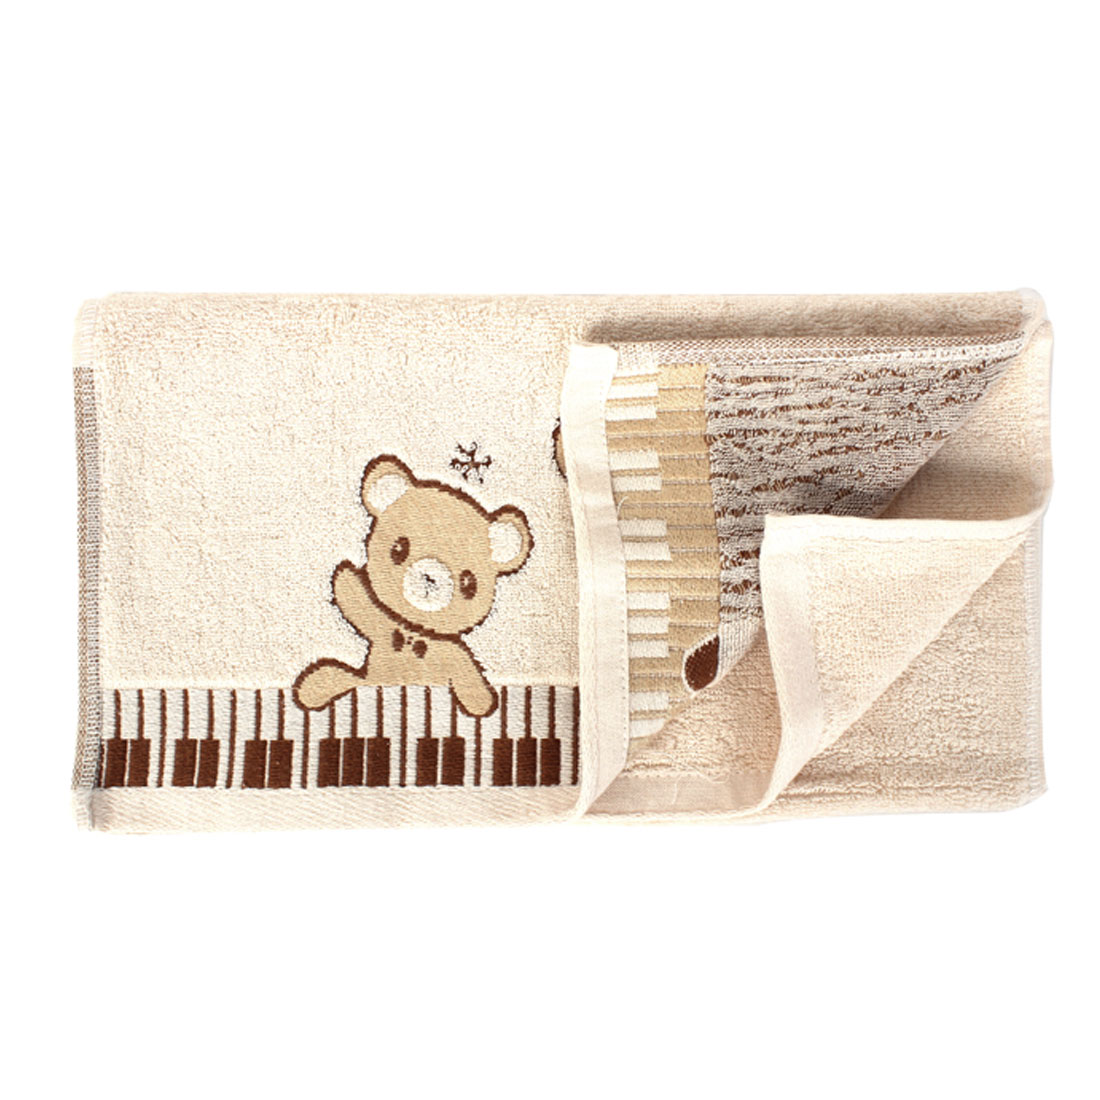 Terrycloth Bear Printed Water Absorbent Shower Bath Towel 75cm x 34cm Beige